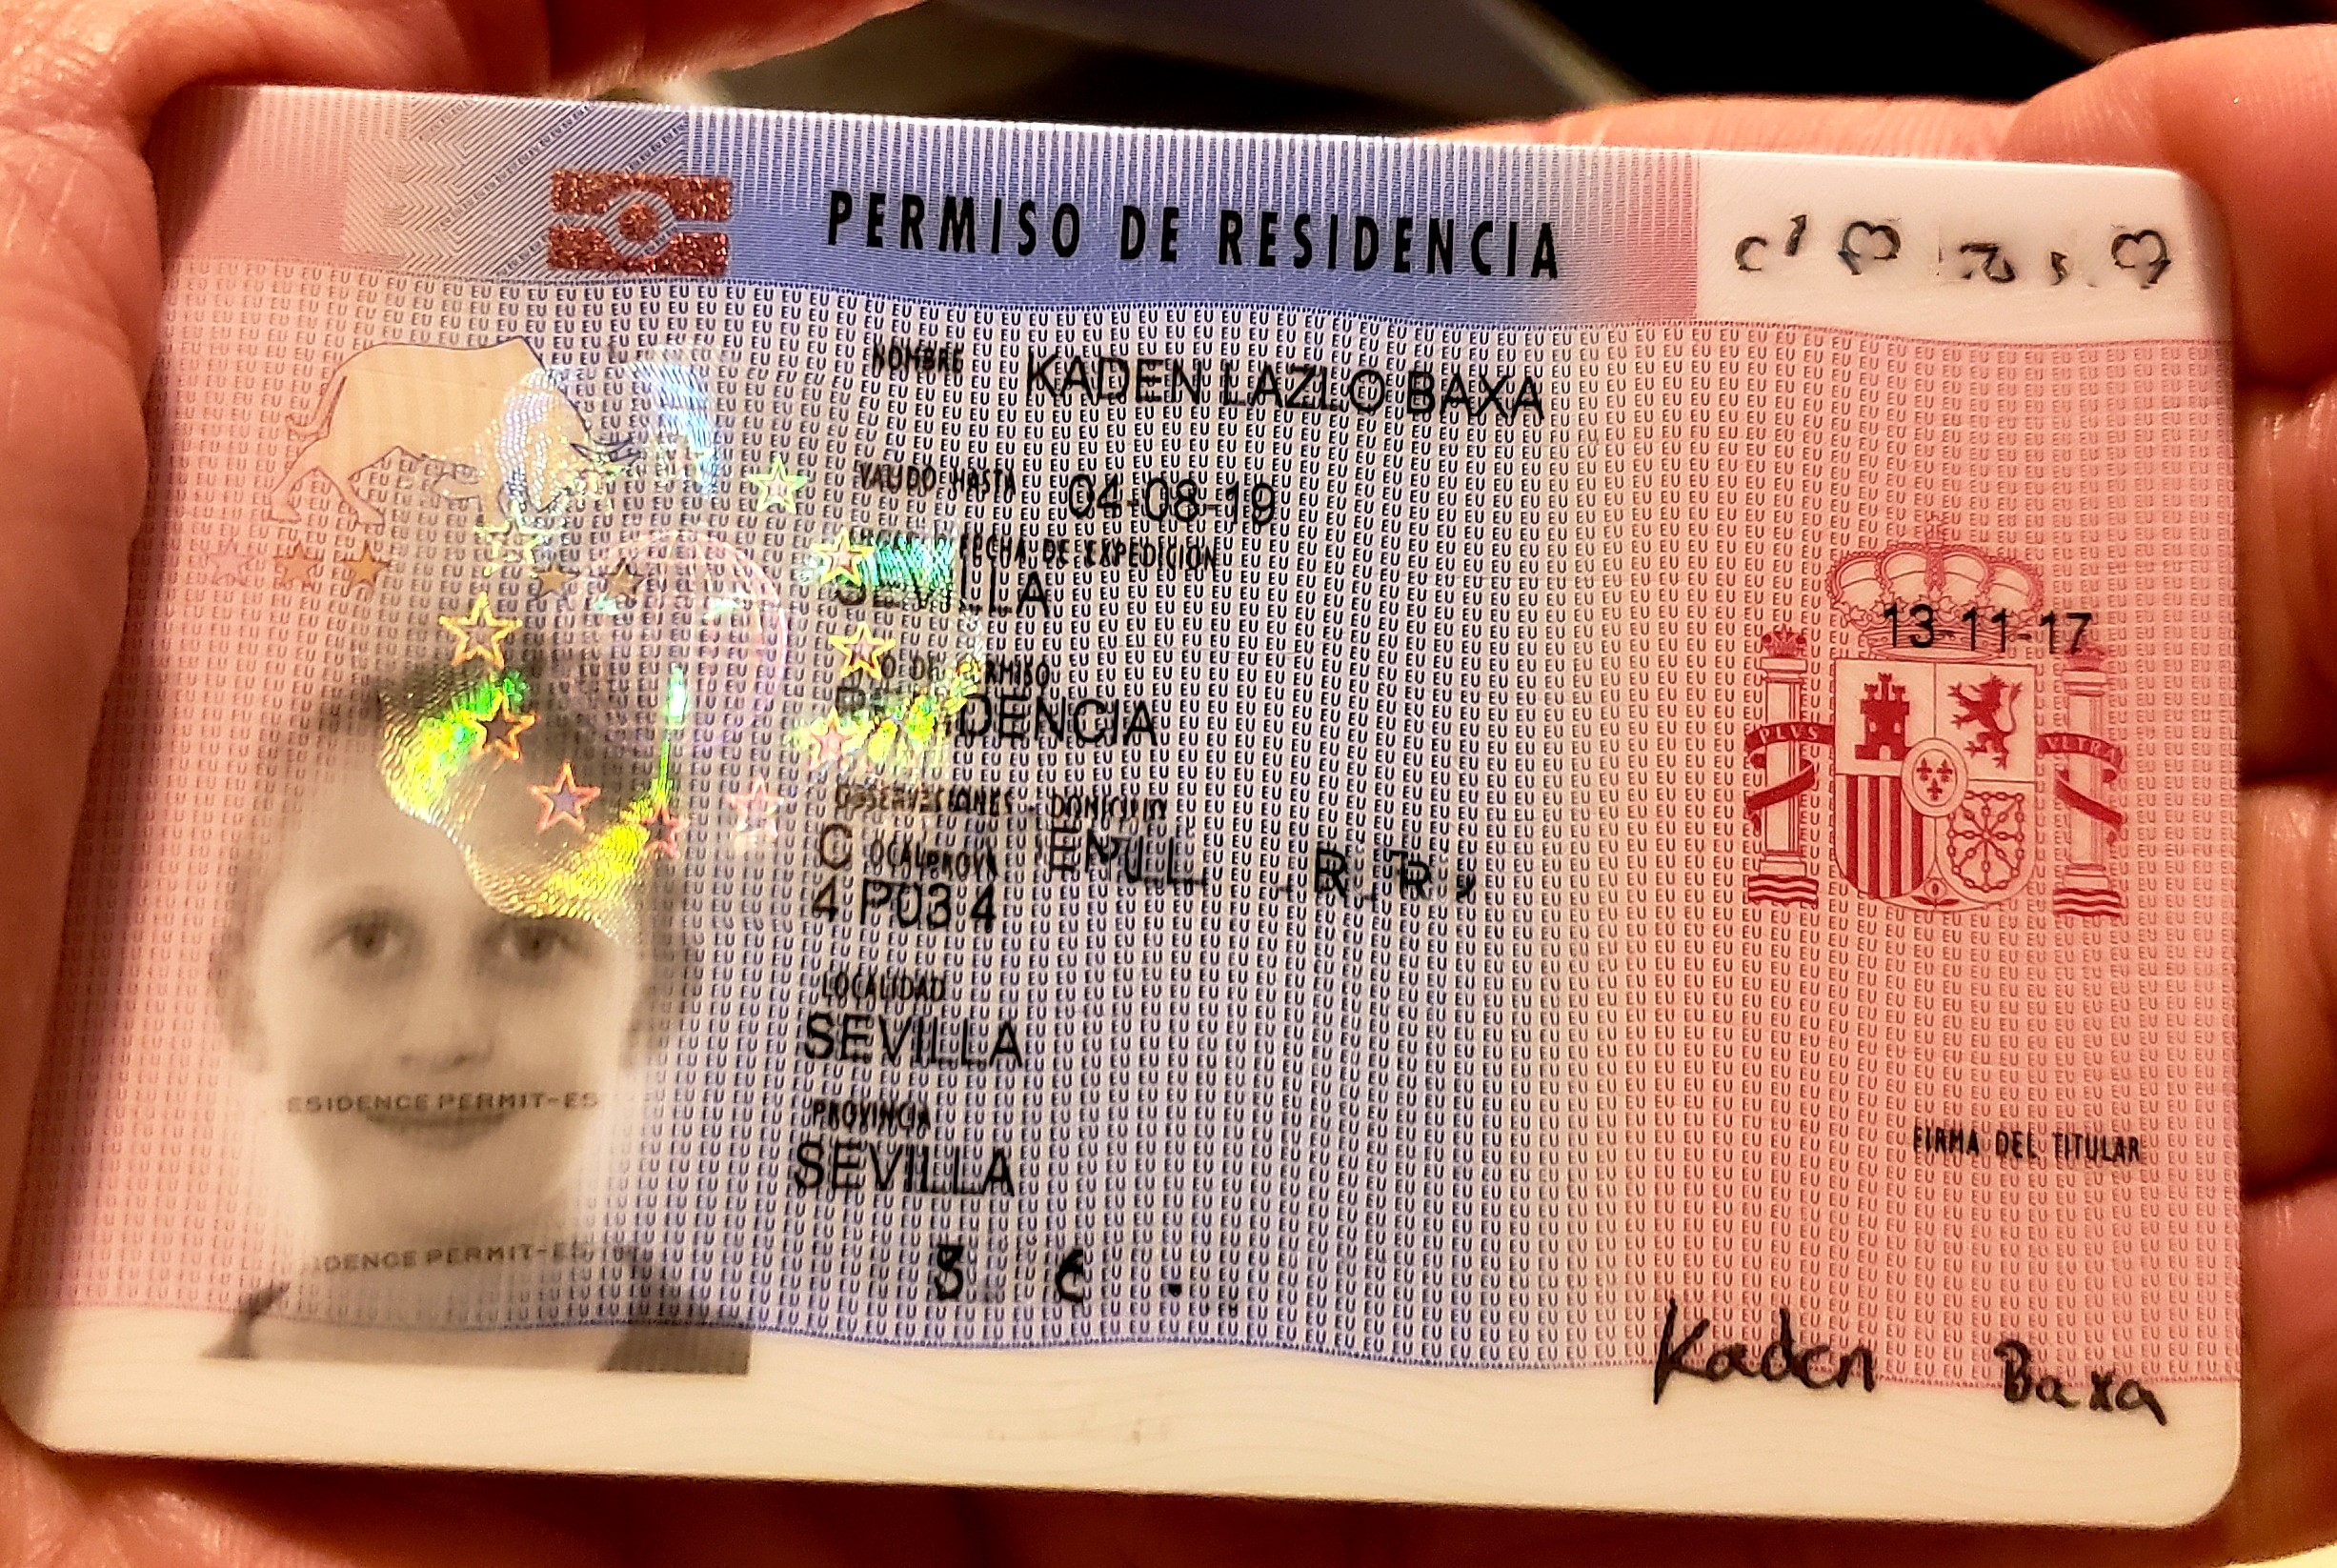 The Spanish TIE Residence Card for Foreigners